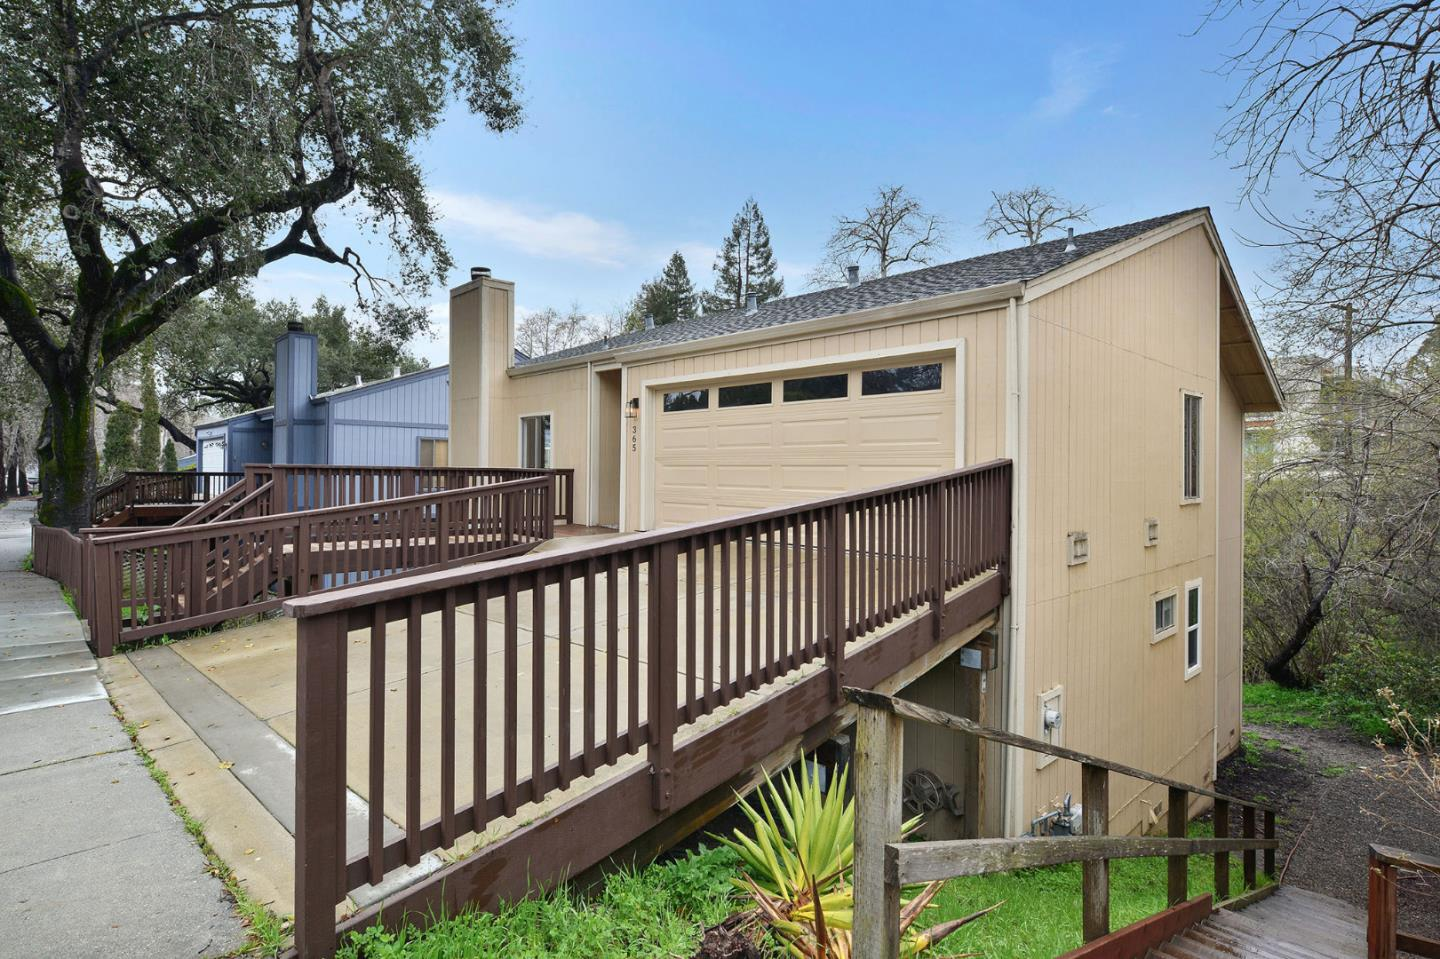 SCREAMING DEAL ALERT!!! Perched well above a beautiful creek this wonderful family home offers a tremendous bang for the buck.  Do you have a large family, work over the hill or are you working at/ going to UCSC?  Well, if so, this house could a great fit for you!  Located on a private cul-de-sac conveniently close to Downtown Santa Cruz and freeway access the natural light flow and privacy will be very difficult to replicate in this price range.  Recently upgraded with new lighting, hardware, and carpet -- the canvas is blank and ready for the next owner to add their own color!